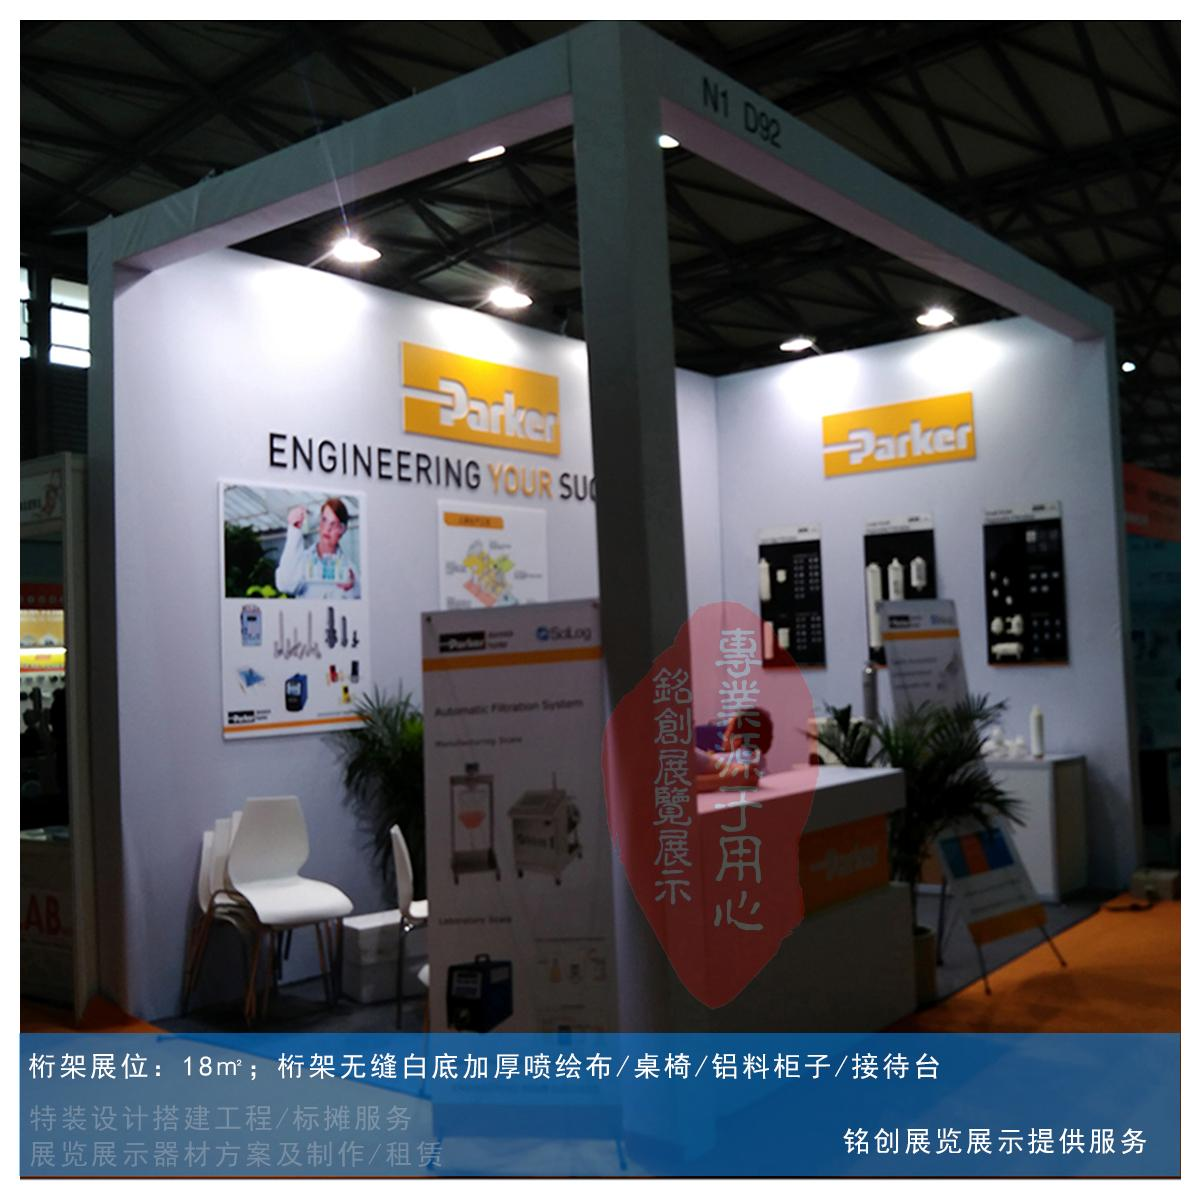 Exhibition Booth Layout : Shanghai exhibition exhibition design booth renderings layout